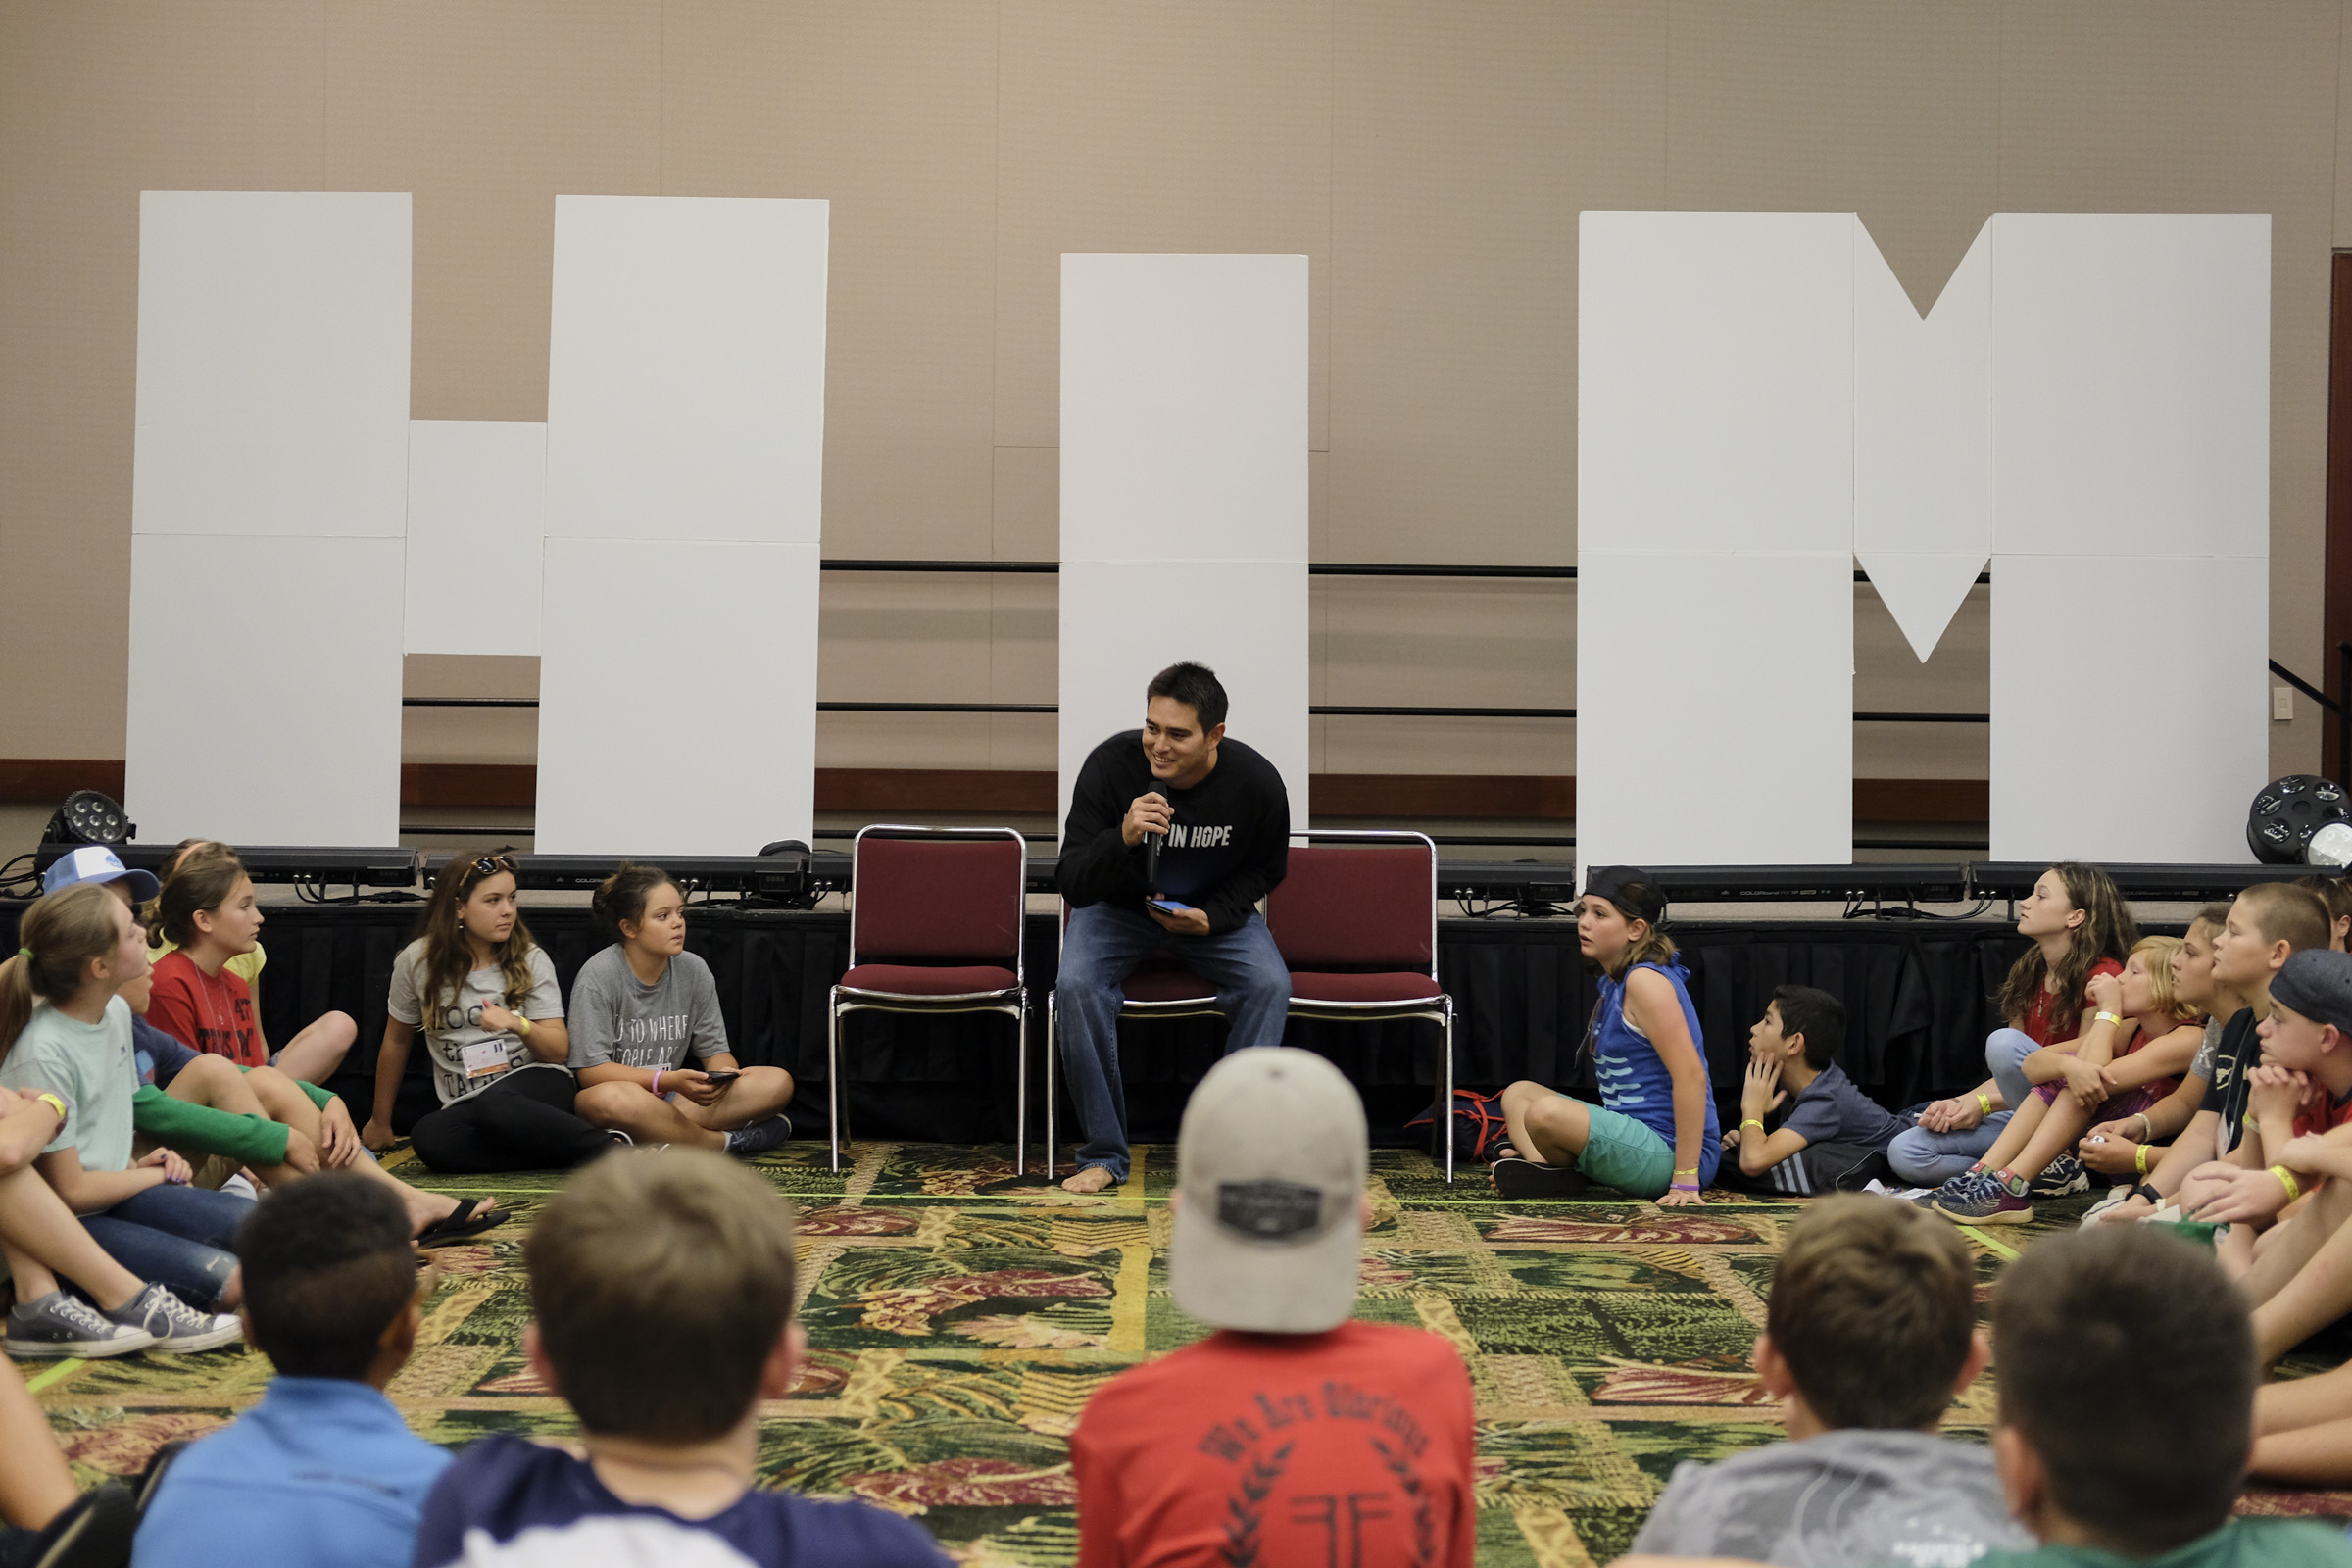 As a youth, what was the best part of the conference for you? -